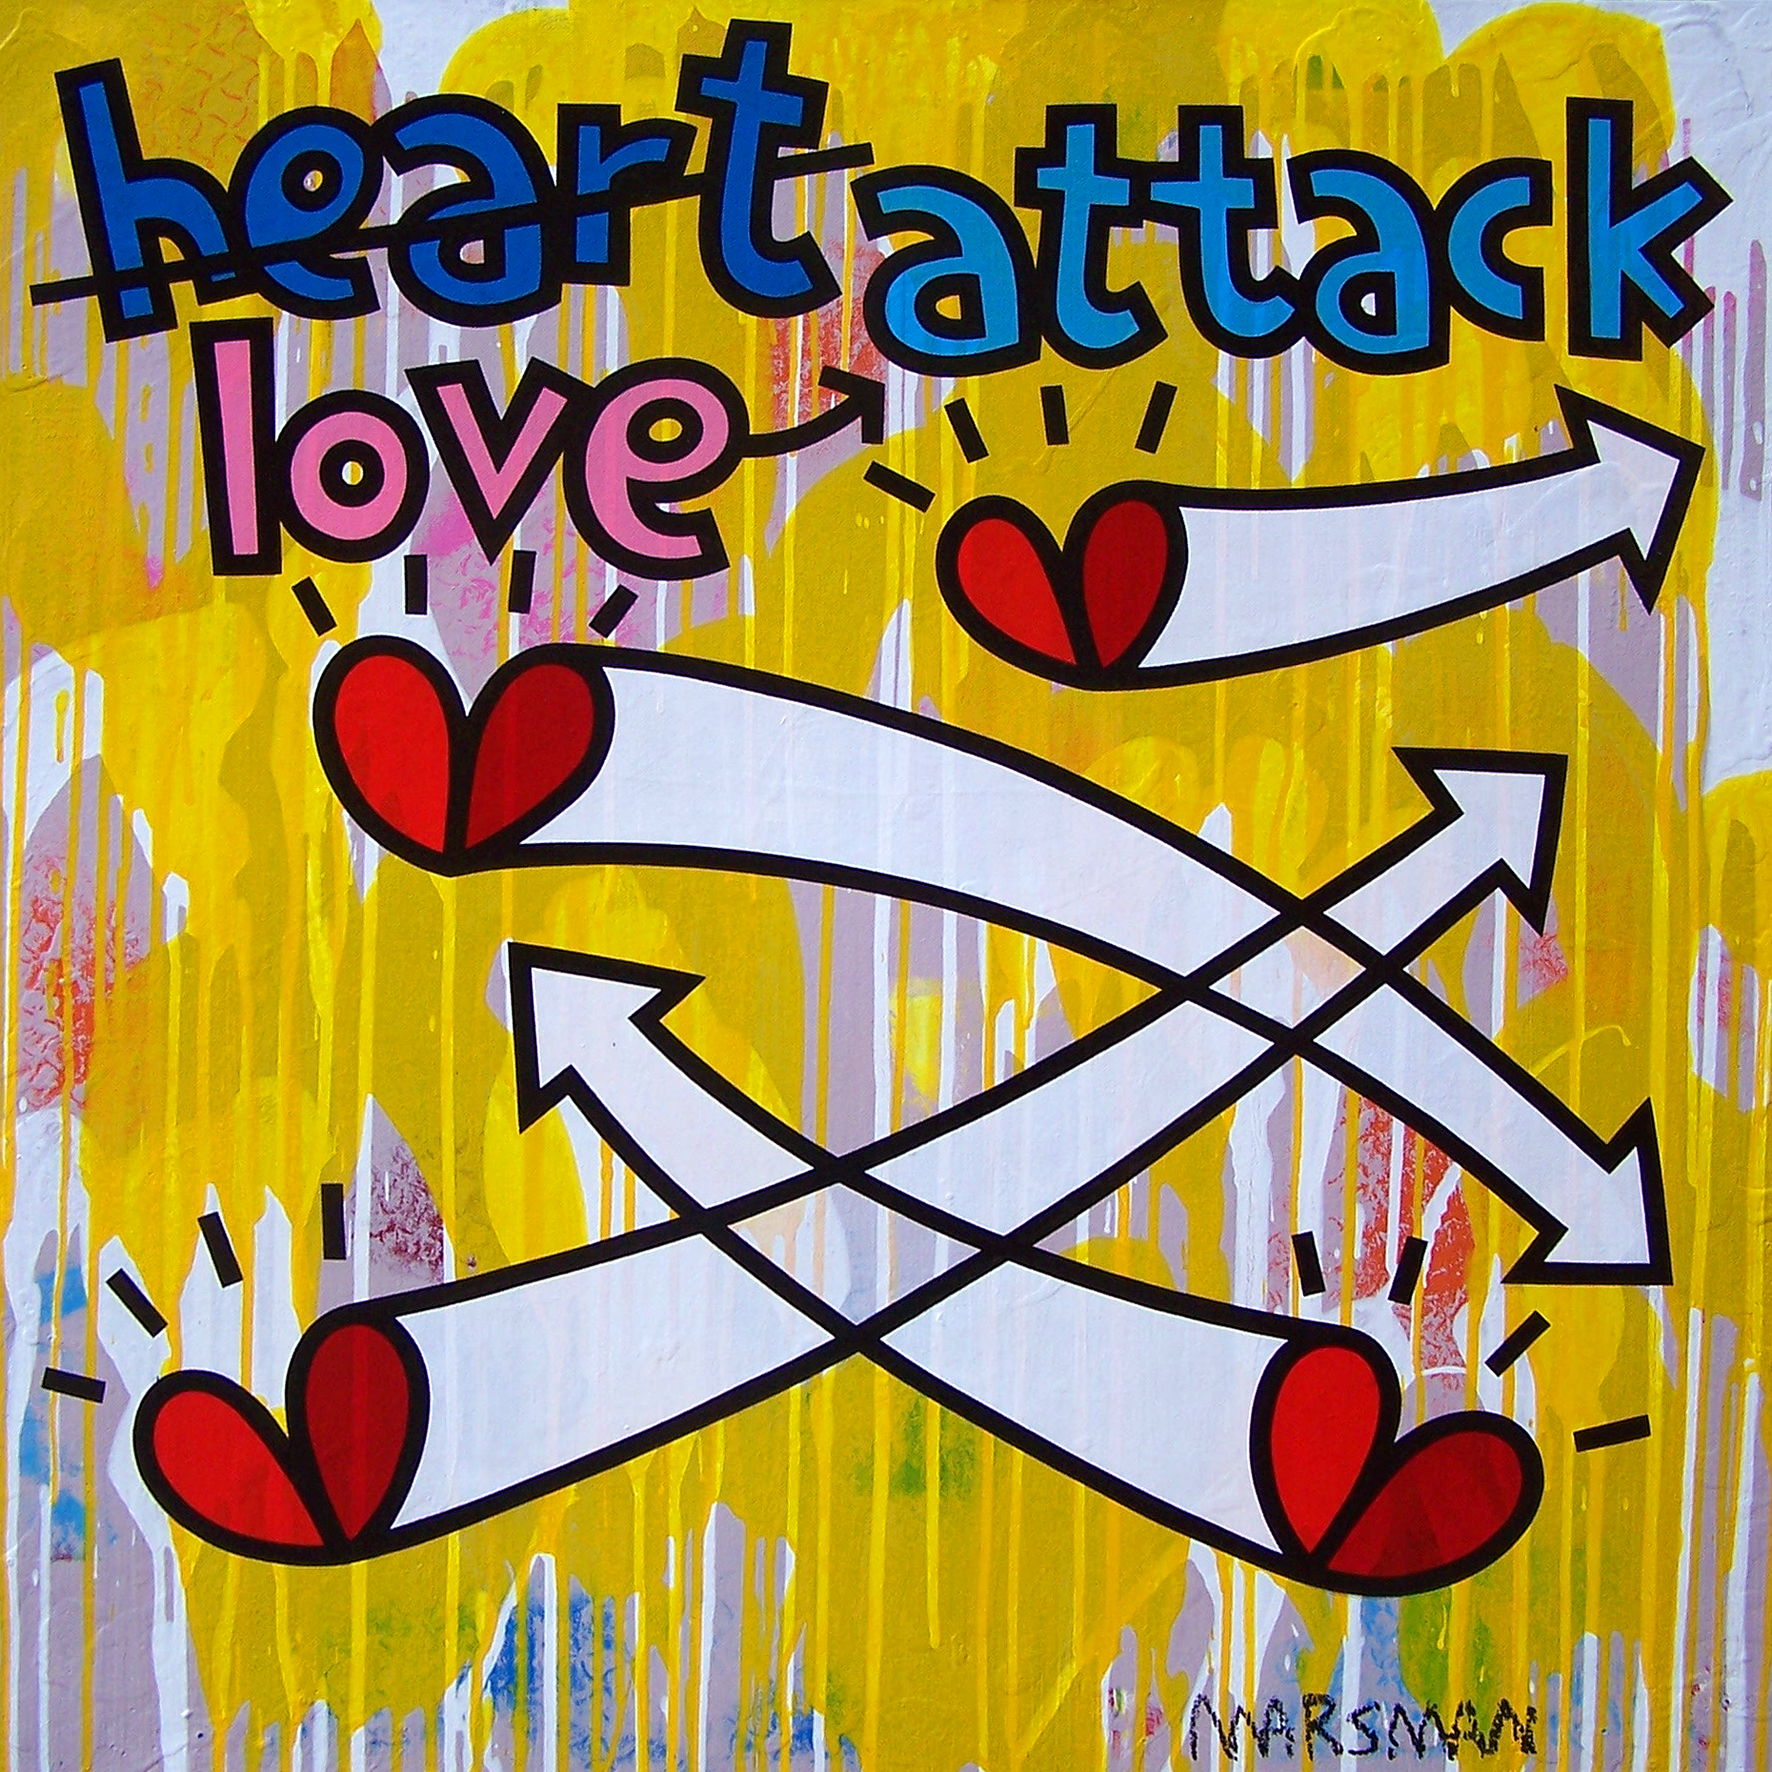 "<b>LOVE ATTACK</b> - 100 x 100 cm - acrylic on canvas - SOLD  <a style=""color: red; text-decoration: none"" href=""mailto:jpgpmarsman@onsbrabantnet.nl"">BESTEL</a>"